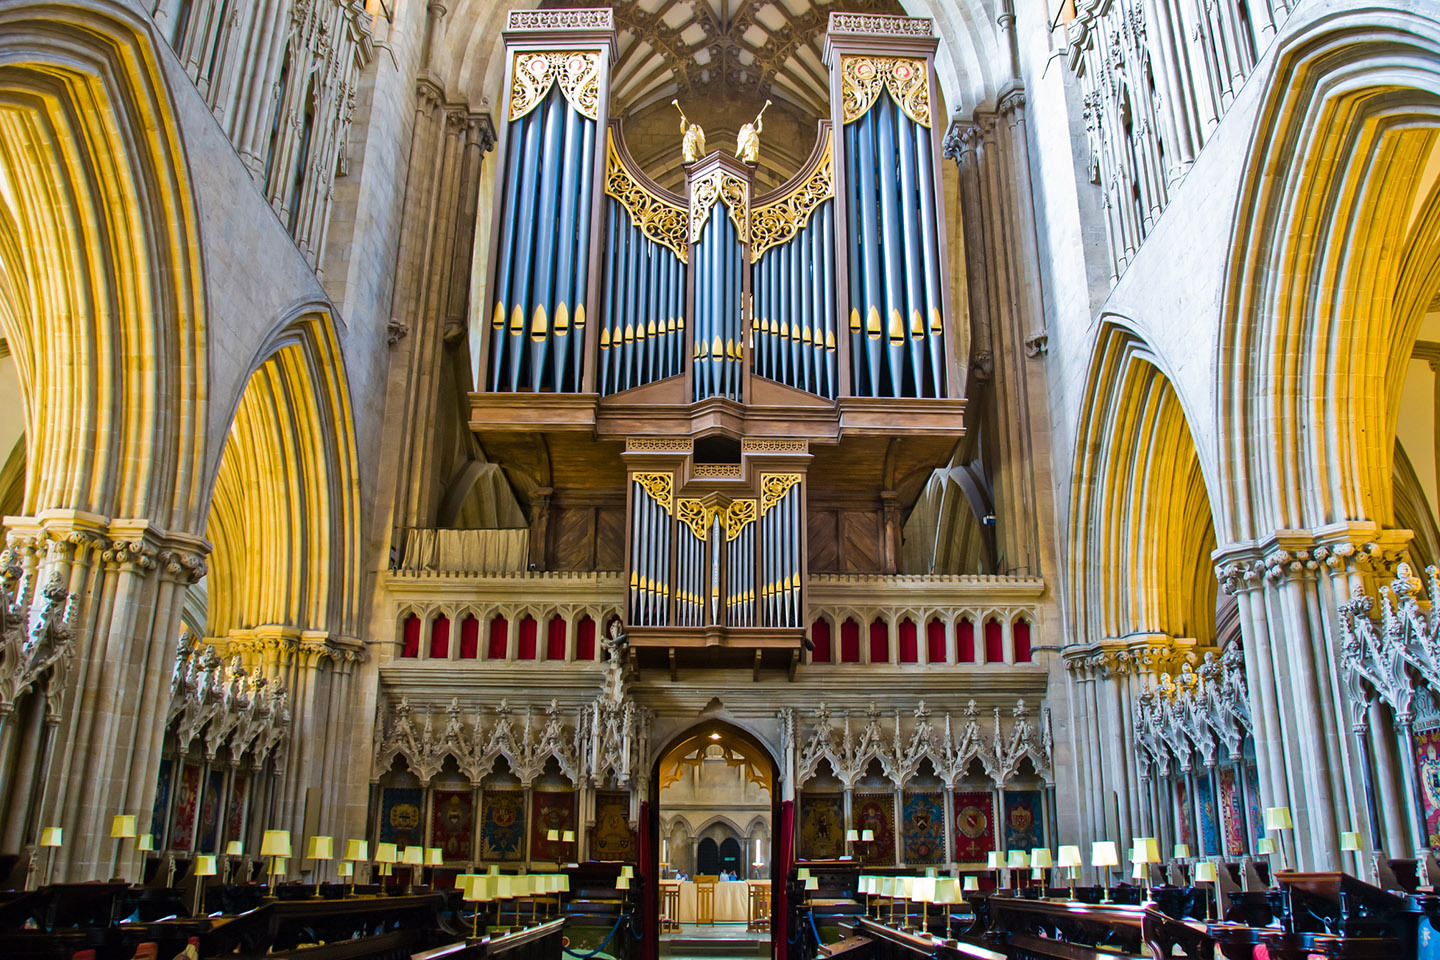 web-england-wells-cathedral-2-gary-ullah-cc